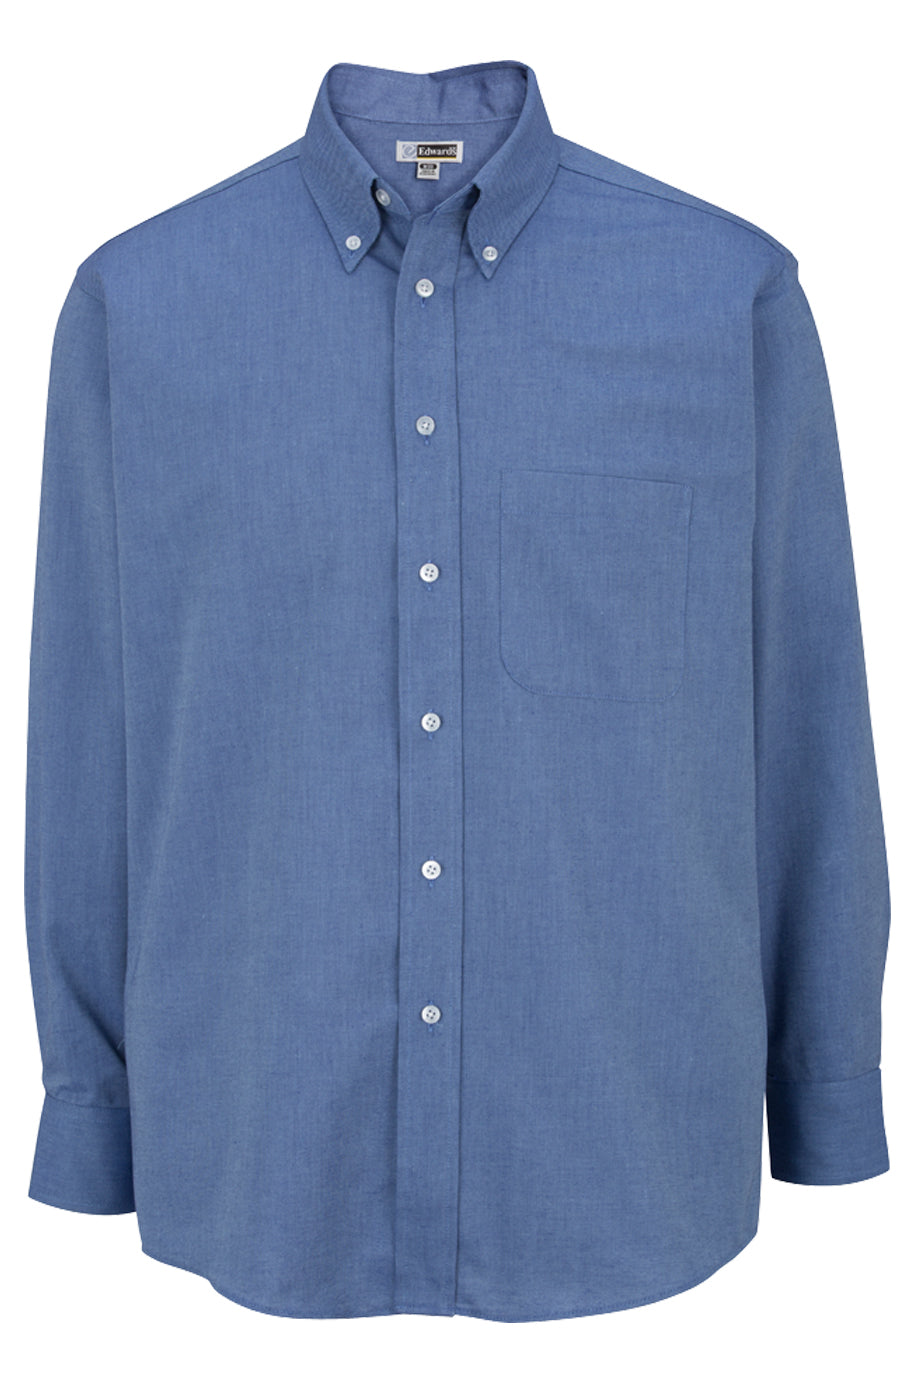 French Blue Edwards Mens Long Sleeve Oxford Shirt